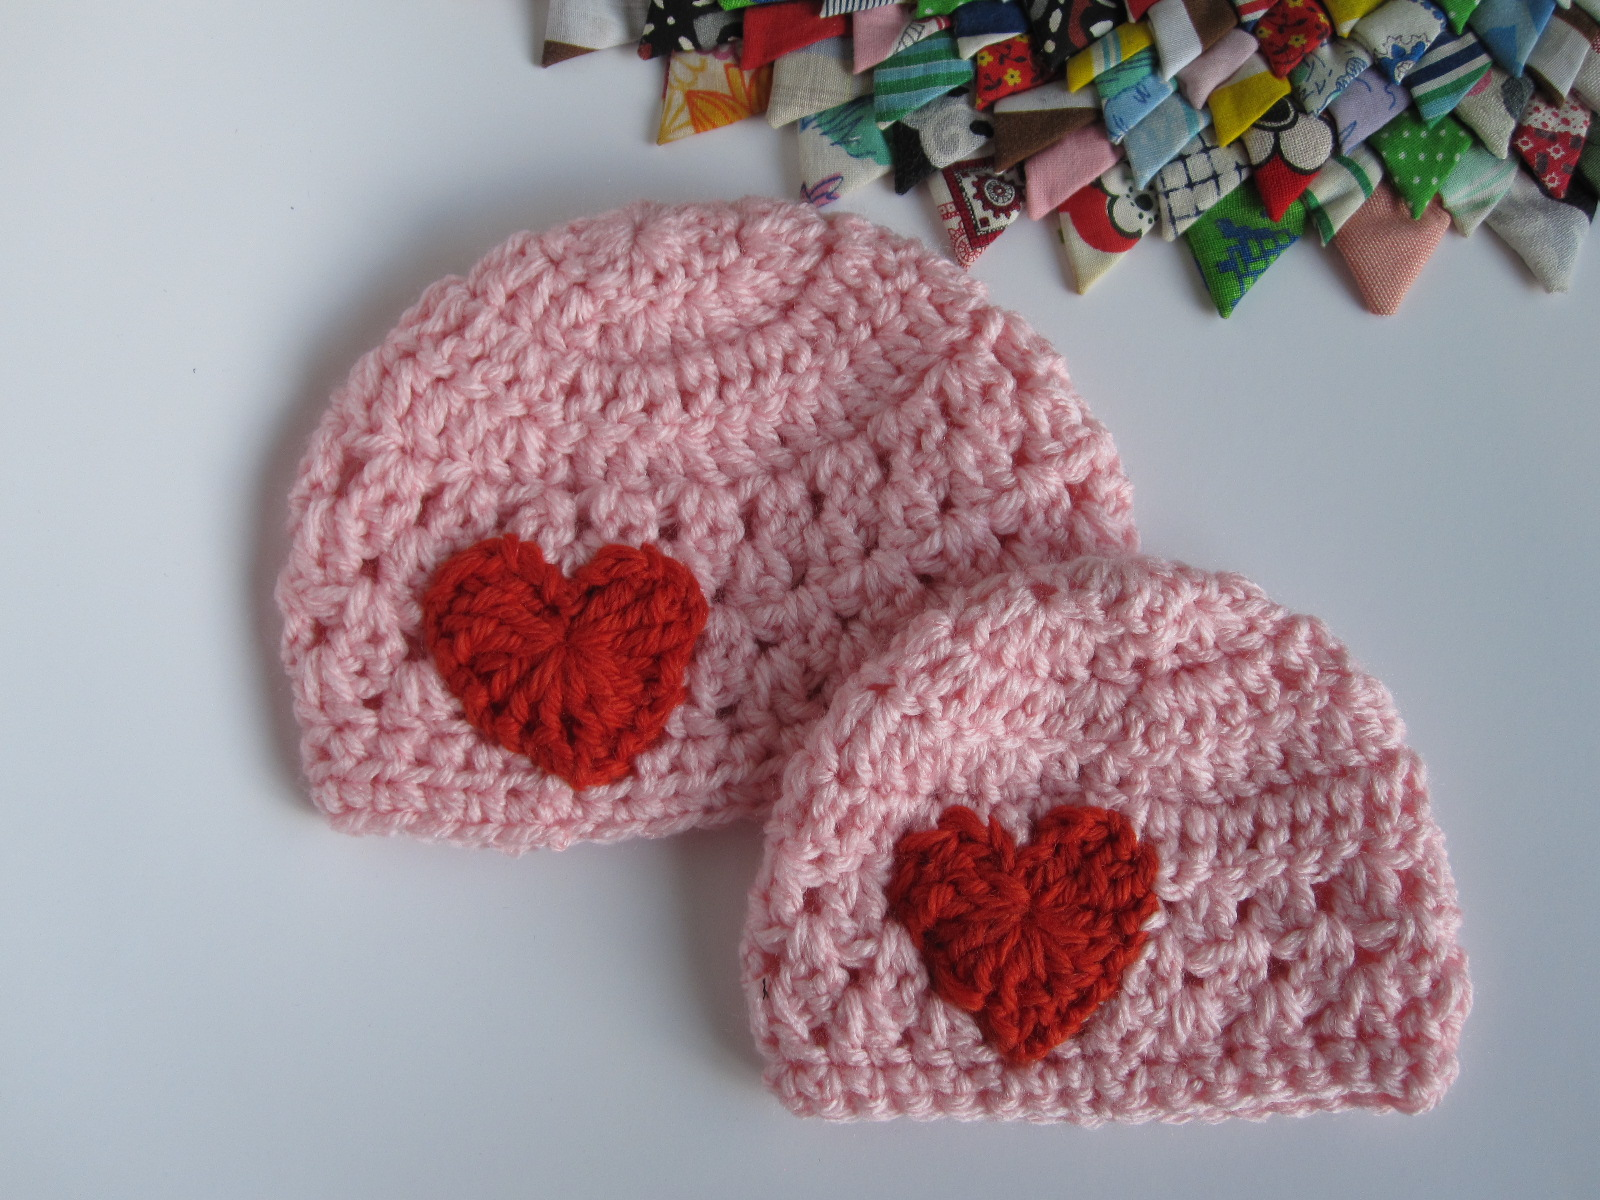 Crochet Tutorial Hat : Lively Crochet - Rhythmic Youth: Preemie Hat Tutorial